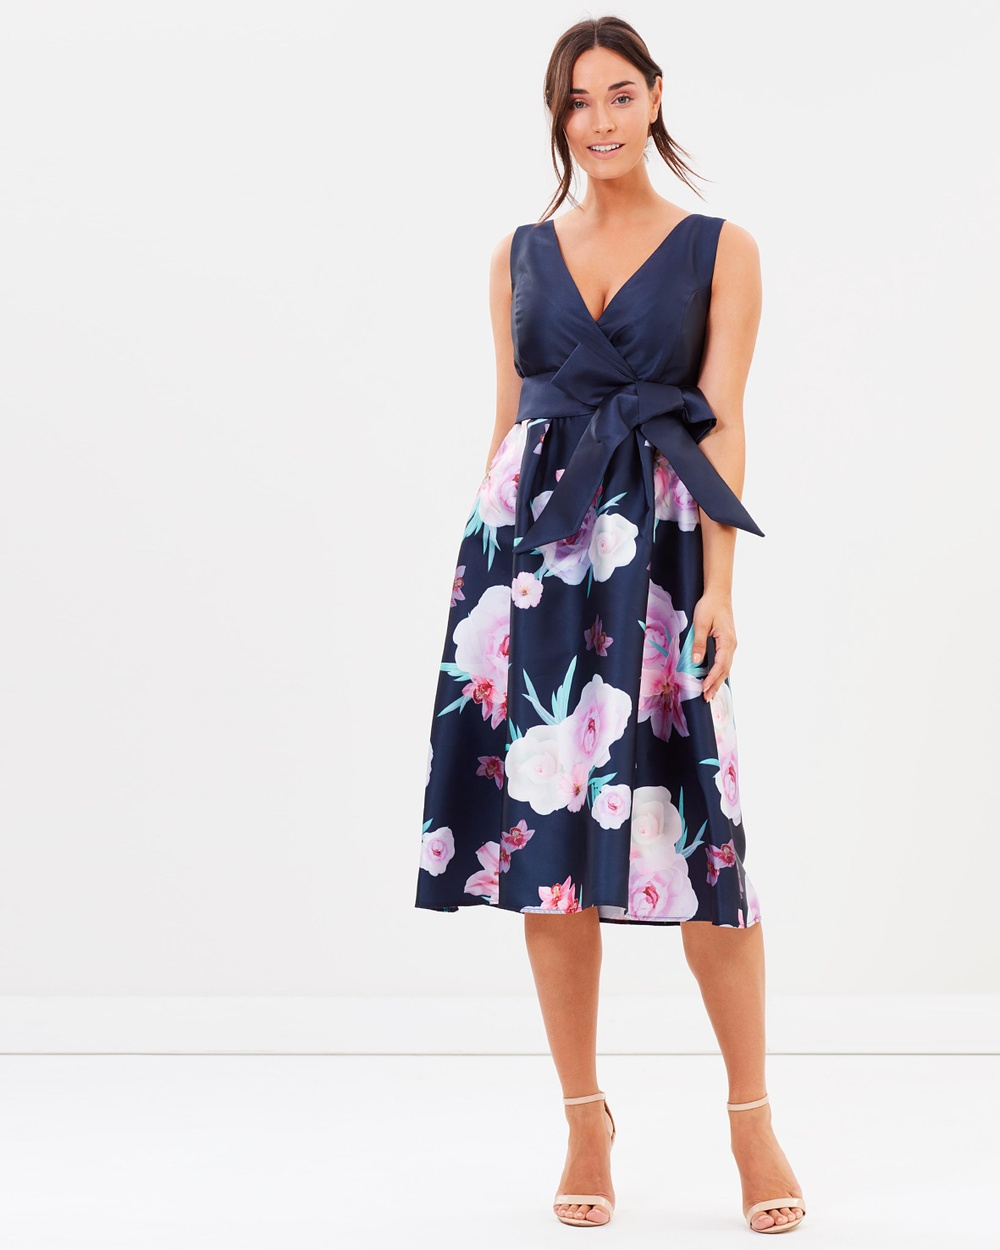 Dorothy Perkins Floral Border Bow Belt Prom Dress Printed Dresses Navy Blue Floral Border Bow Belt Prom Dress